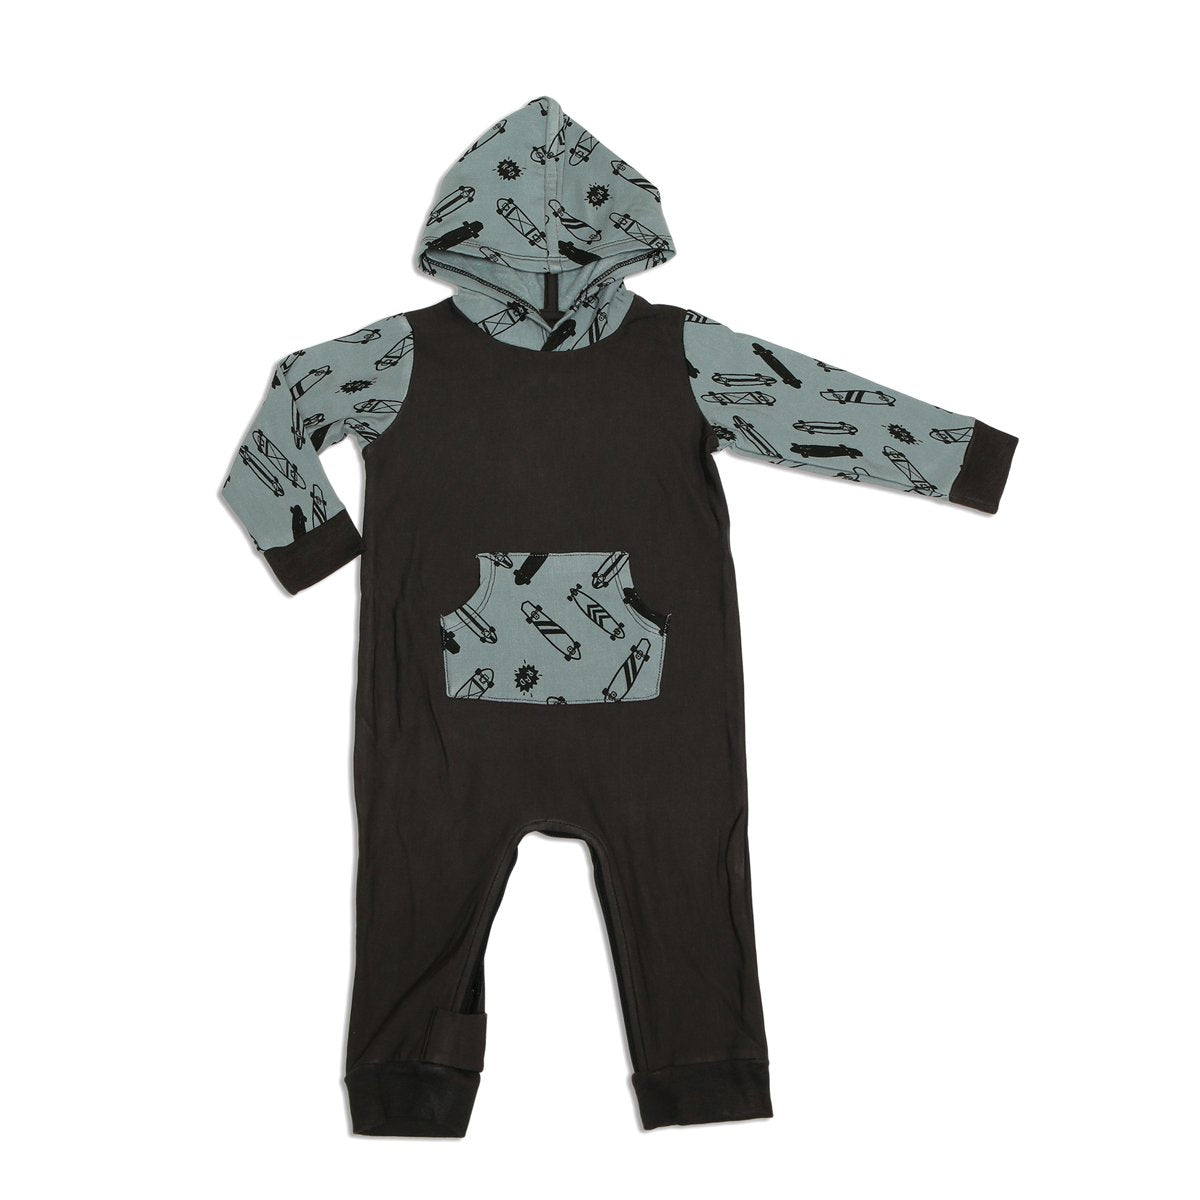 bamboo fleece hooded romper with easy dressing zipper